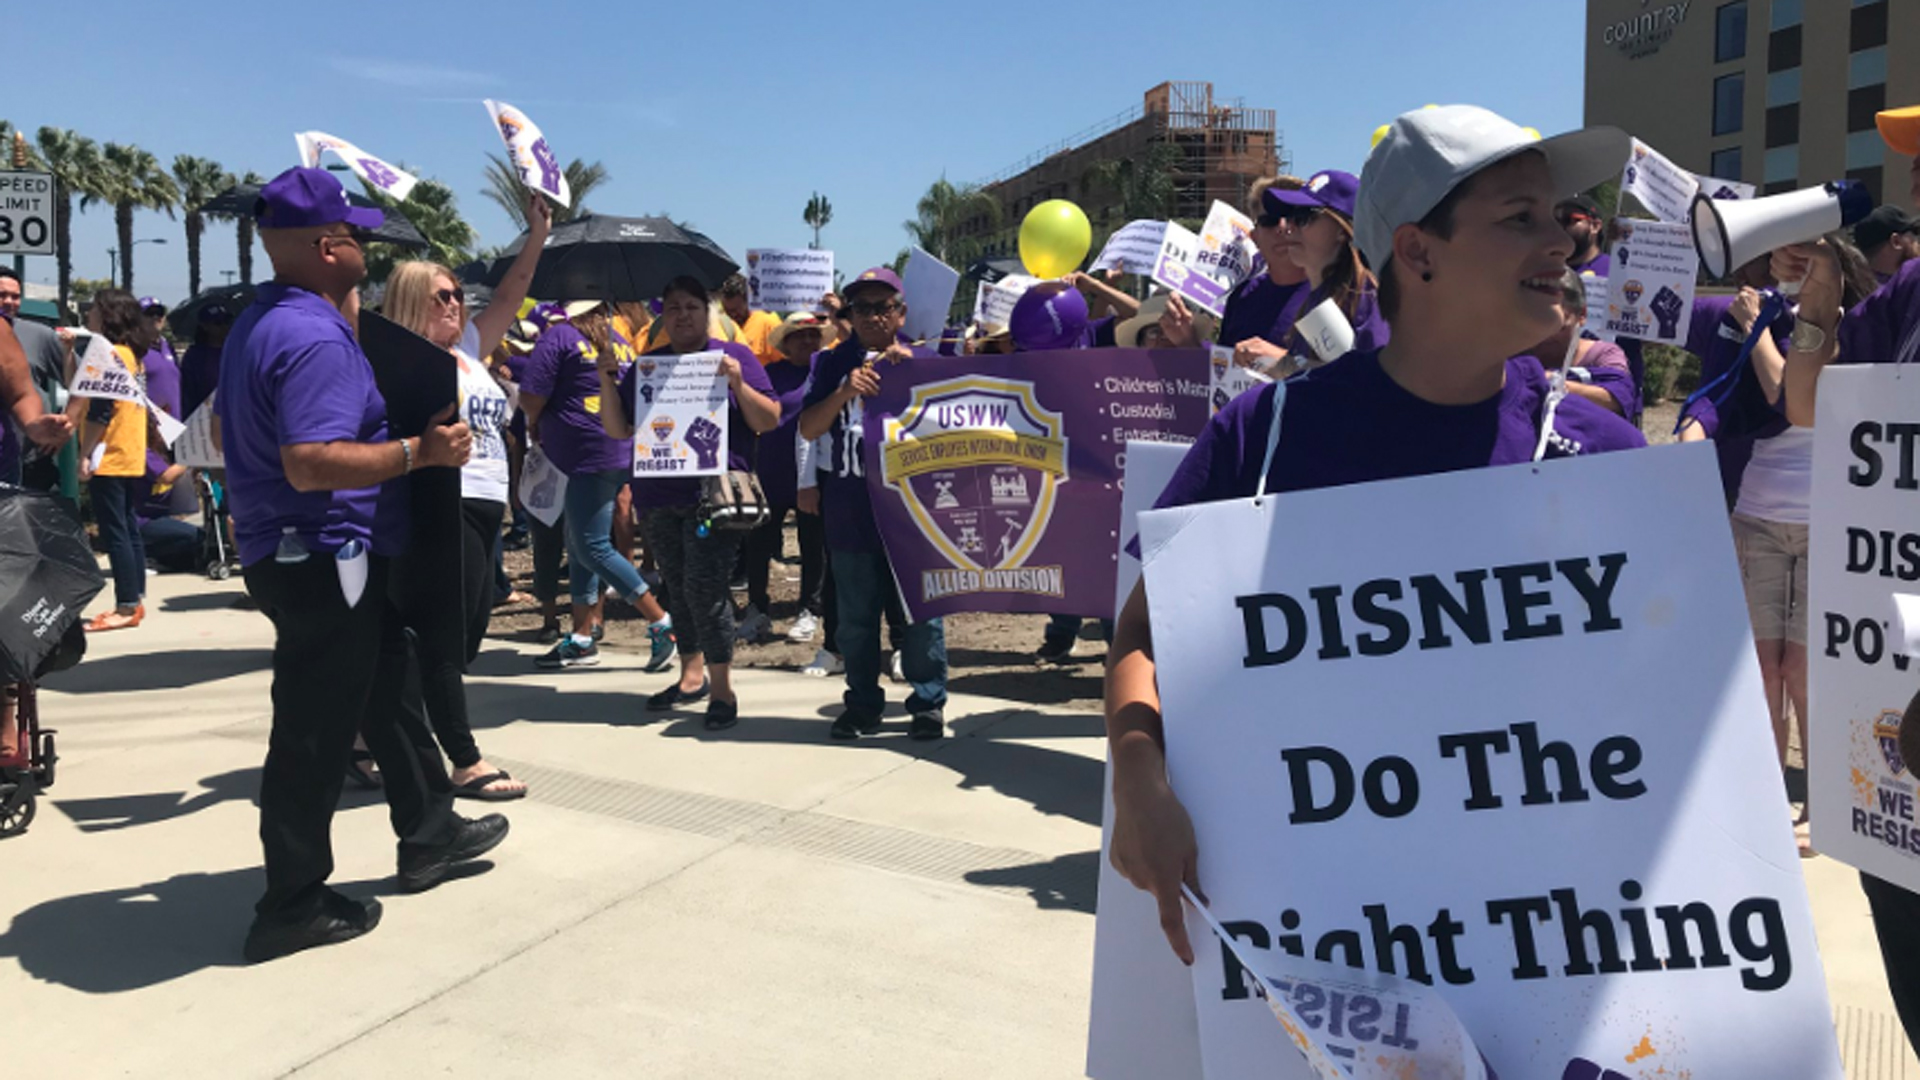 Disneyland workers protest and call for better wages on June 14, 2018. (Credit: Chip Yost/KTLA)